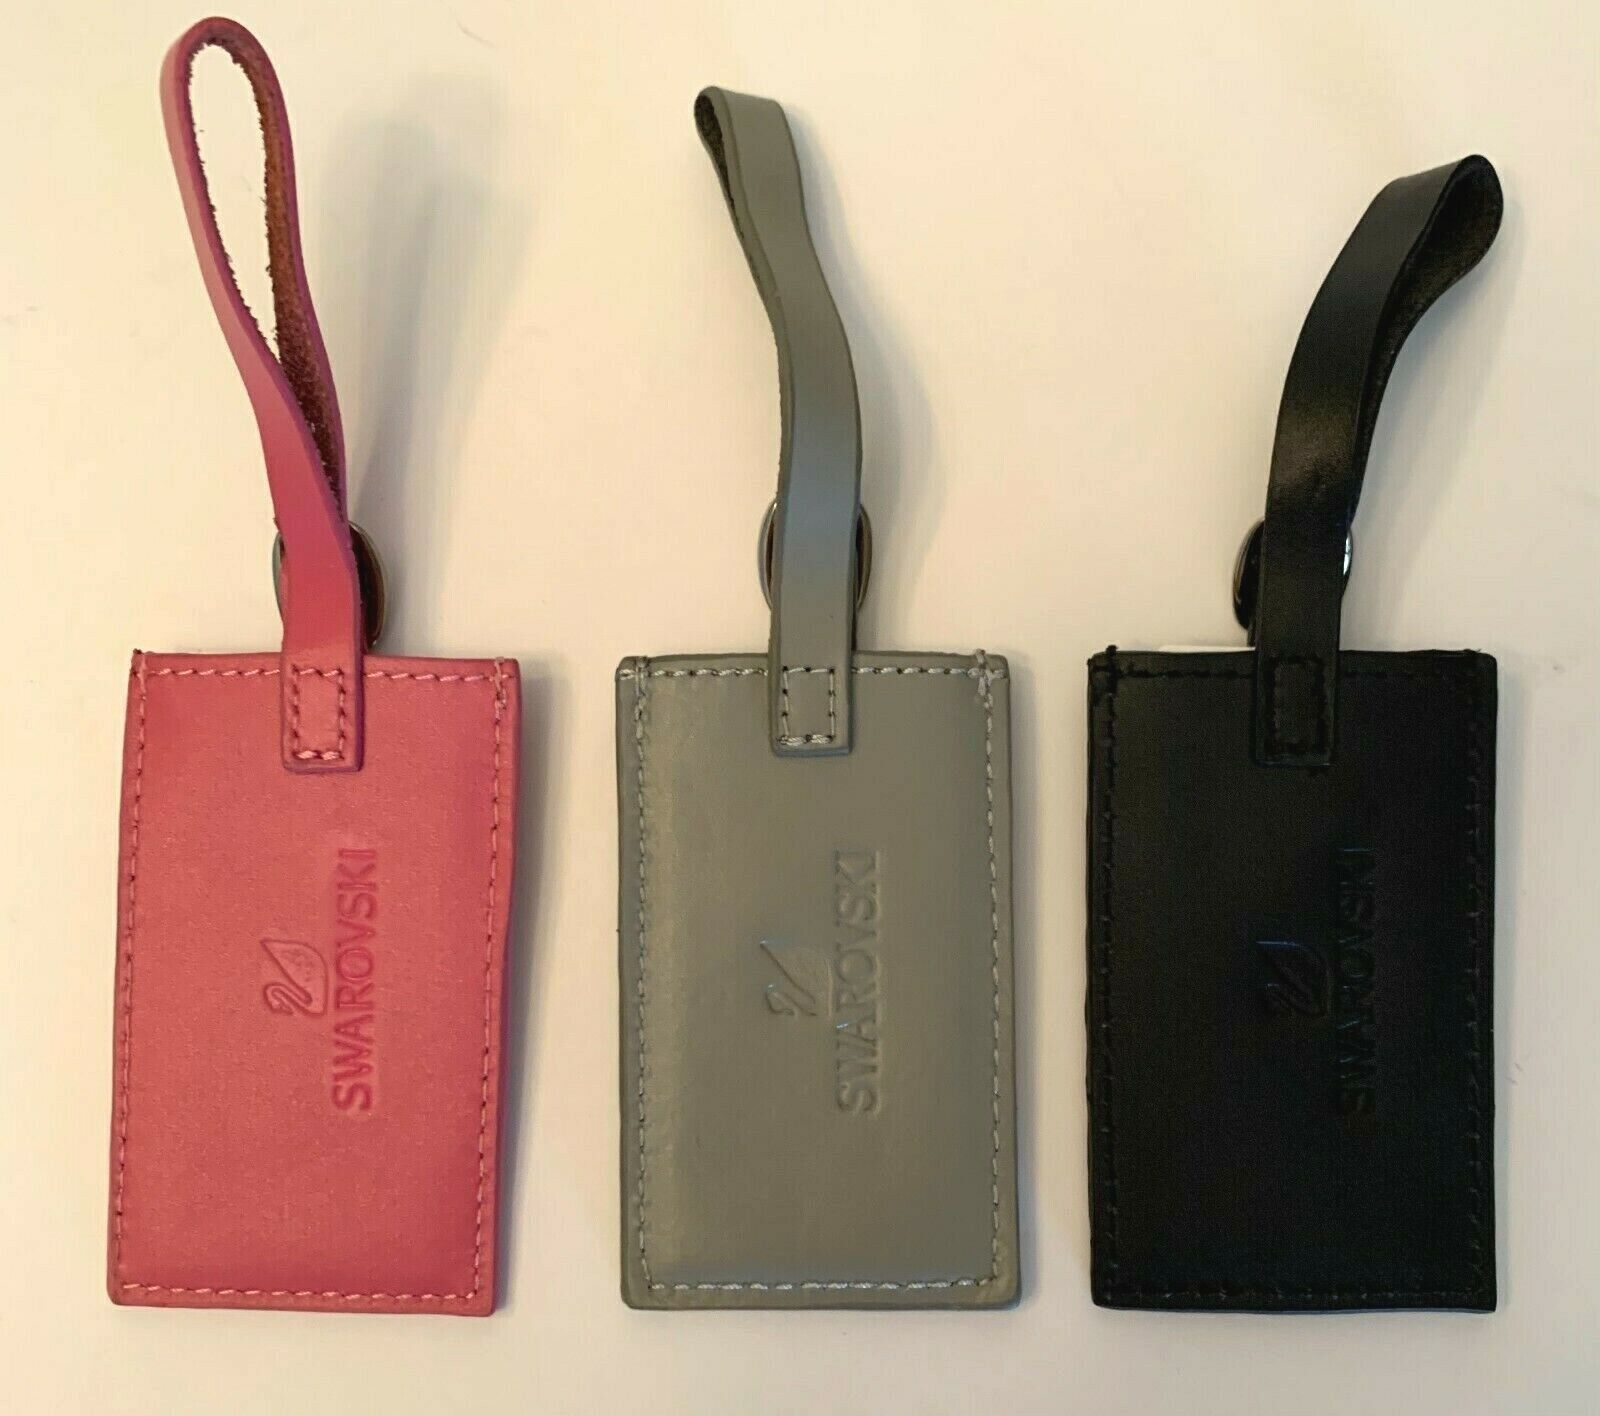 Swarovski Event Gift 3 Multi-Color Luggage Tags New - $15.00